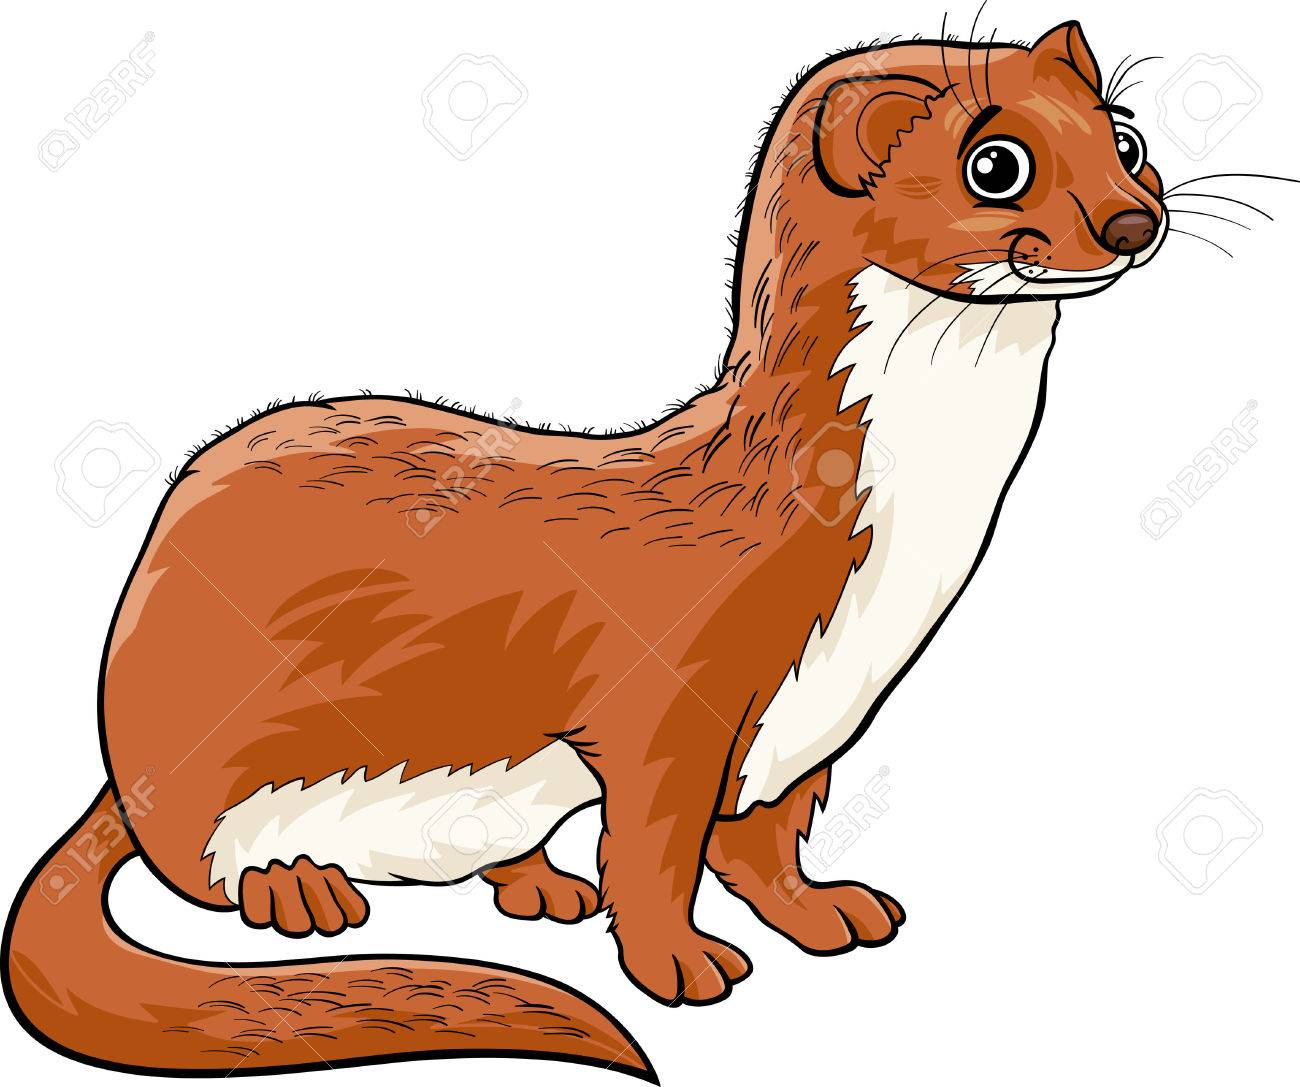 cartoon illustration of cute weasel animal royalty free cliparts rh 123rf com  weasel clipart free